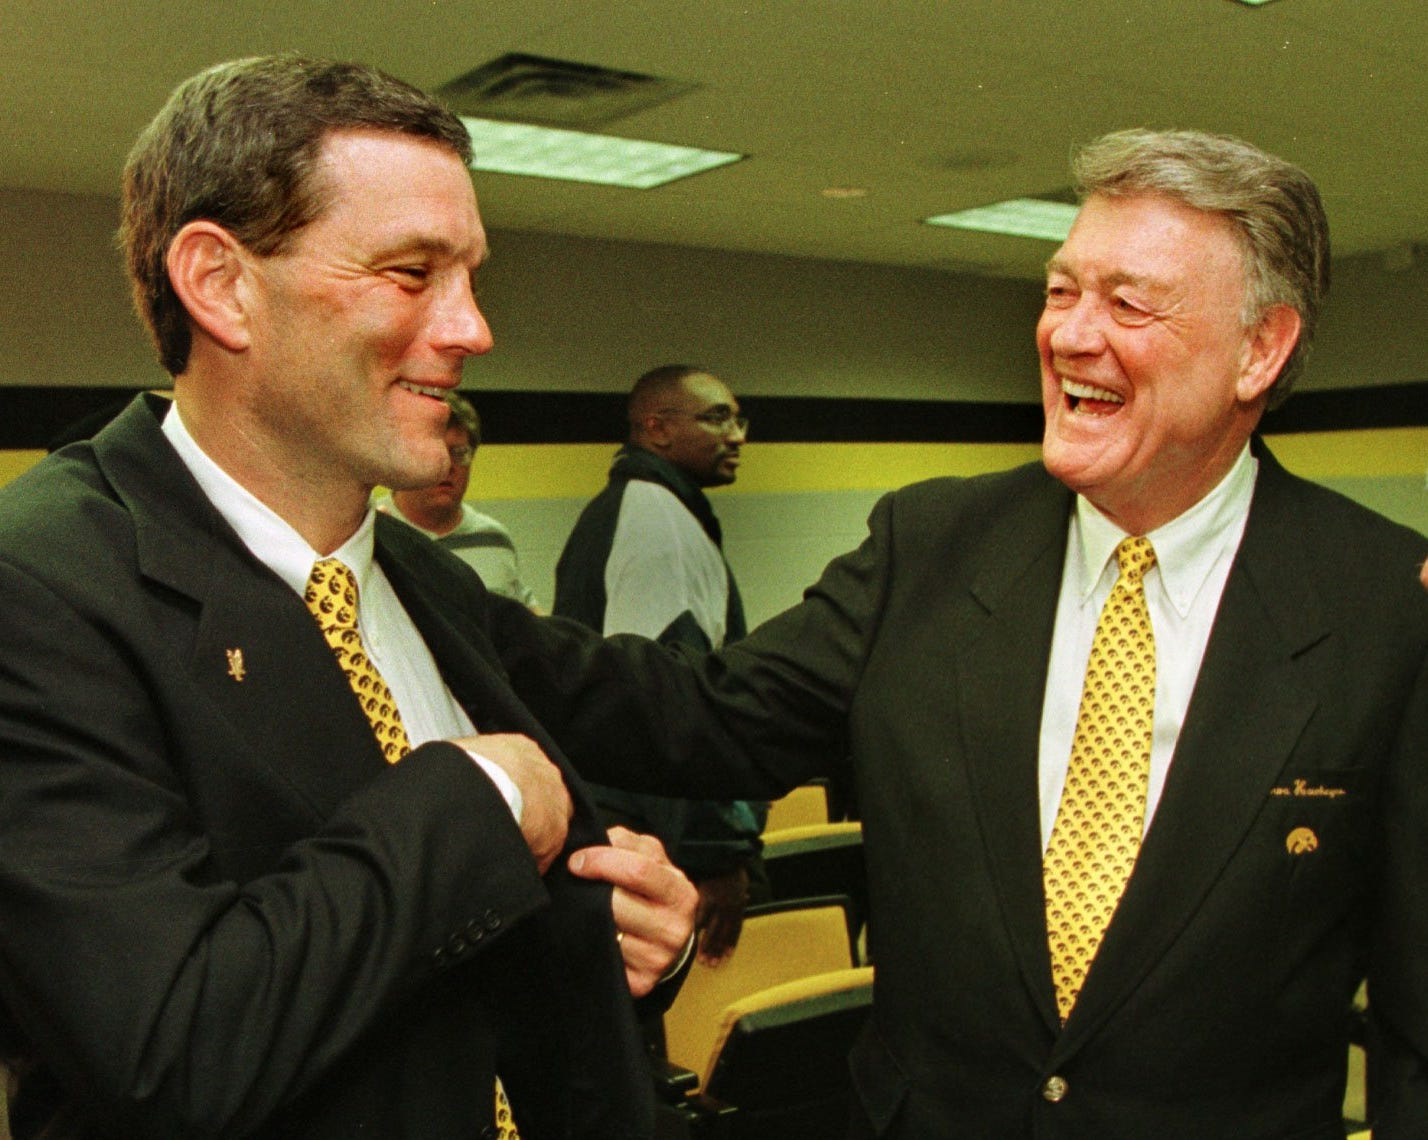 From 1998: Retired Iowa football coach Hayden Fry, right, was on hand to welcome his former assistant, Kirk Ferentz, as his successor with the Hawkeyes. Ferentz served as Iowa's offensive line coach under Fry from 1981 to 1989.